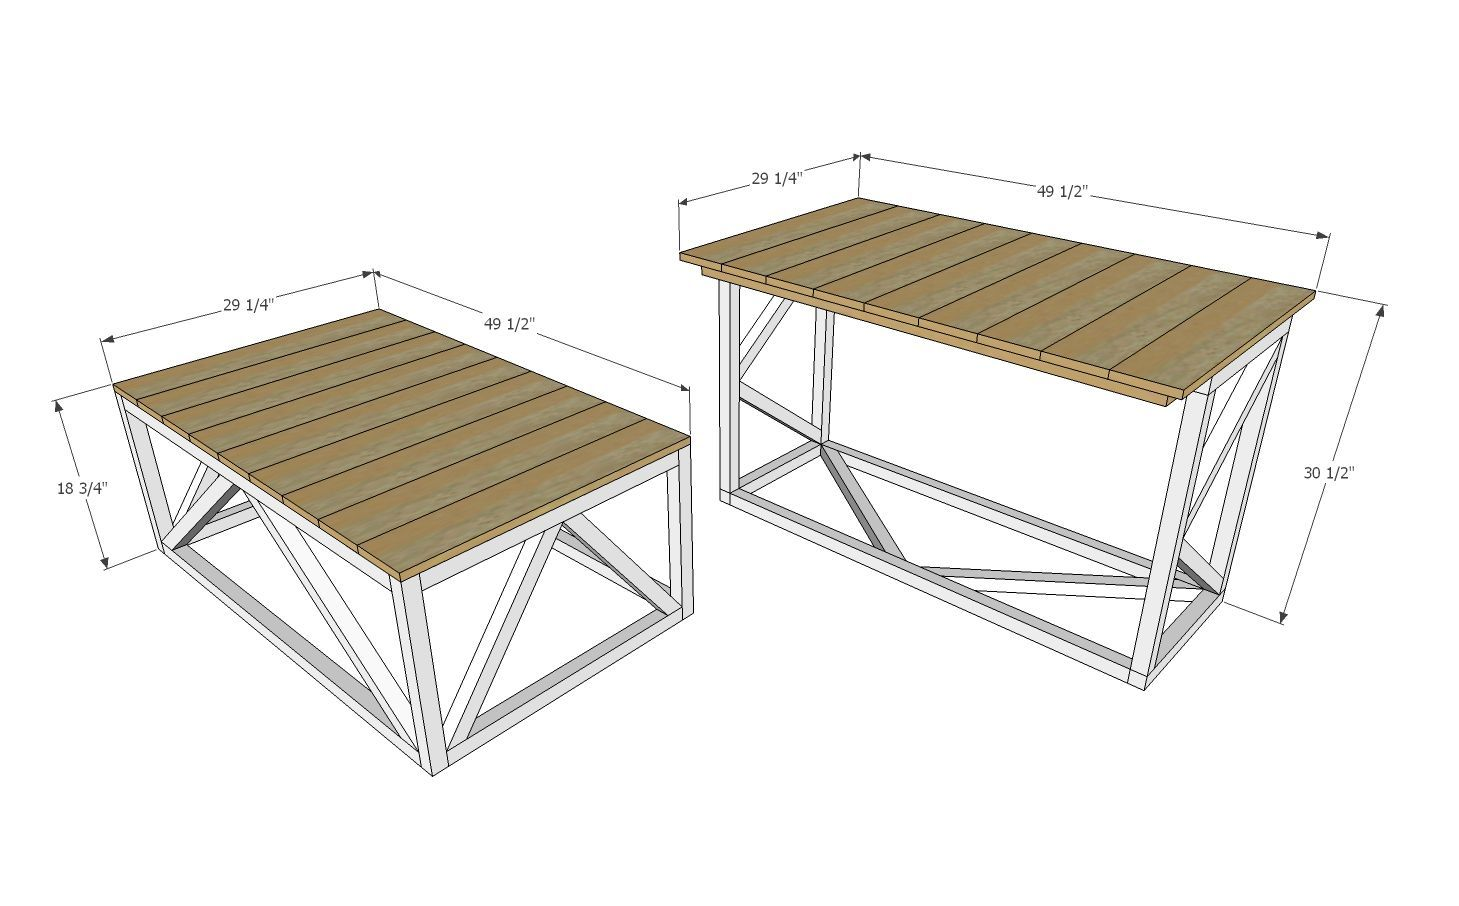 Diy Coffee Table That Converts To Dining Table Free Plans By Dining Tables Din In 2020 Coffee Table Convert To Dining Table Coffee Table Coffee Table To Dining Table